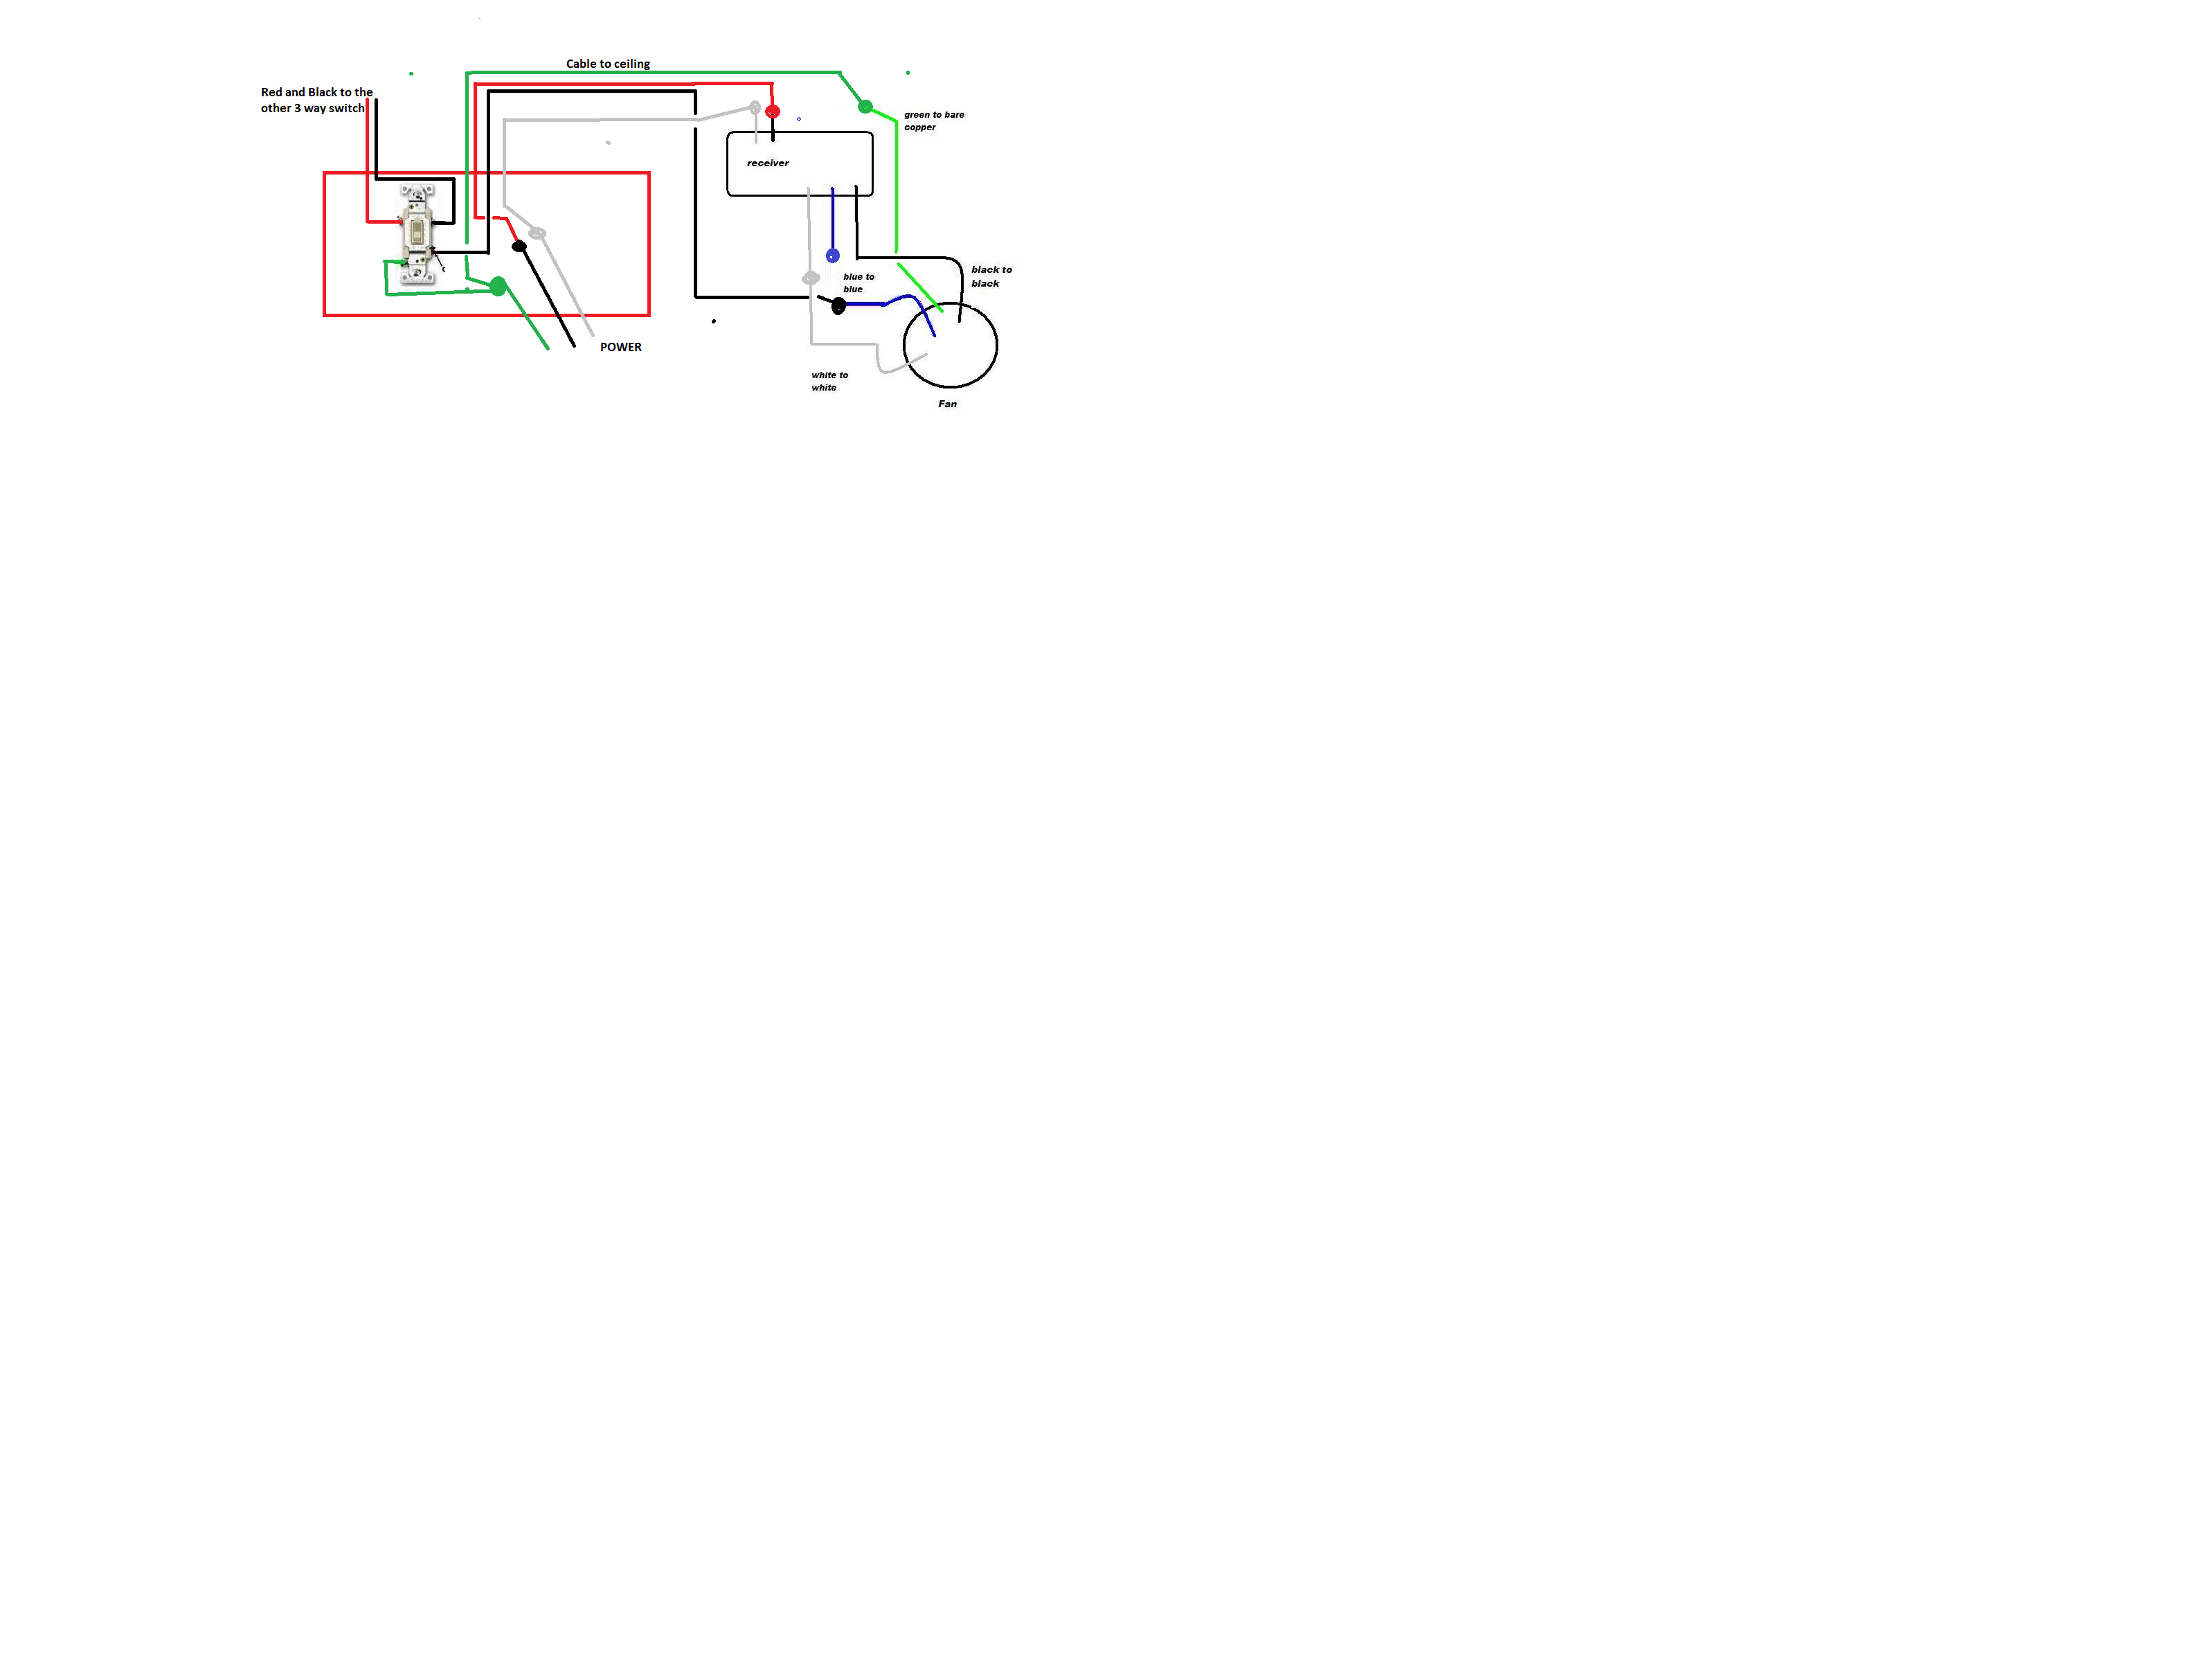 c6293abf-3d4c-40d8-b588-aaab40dad741_3 Way from Speed Controller.png